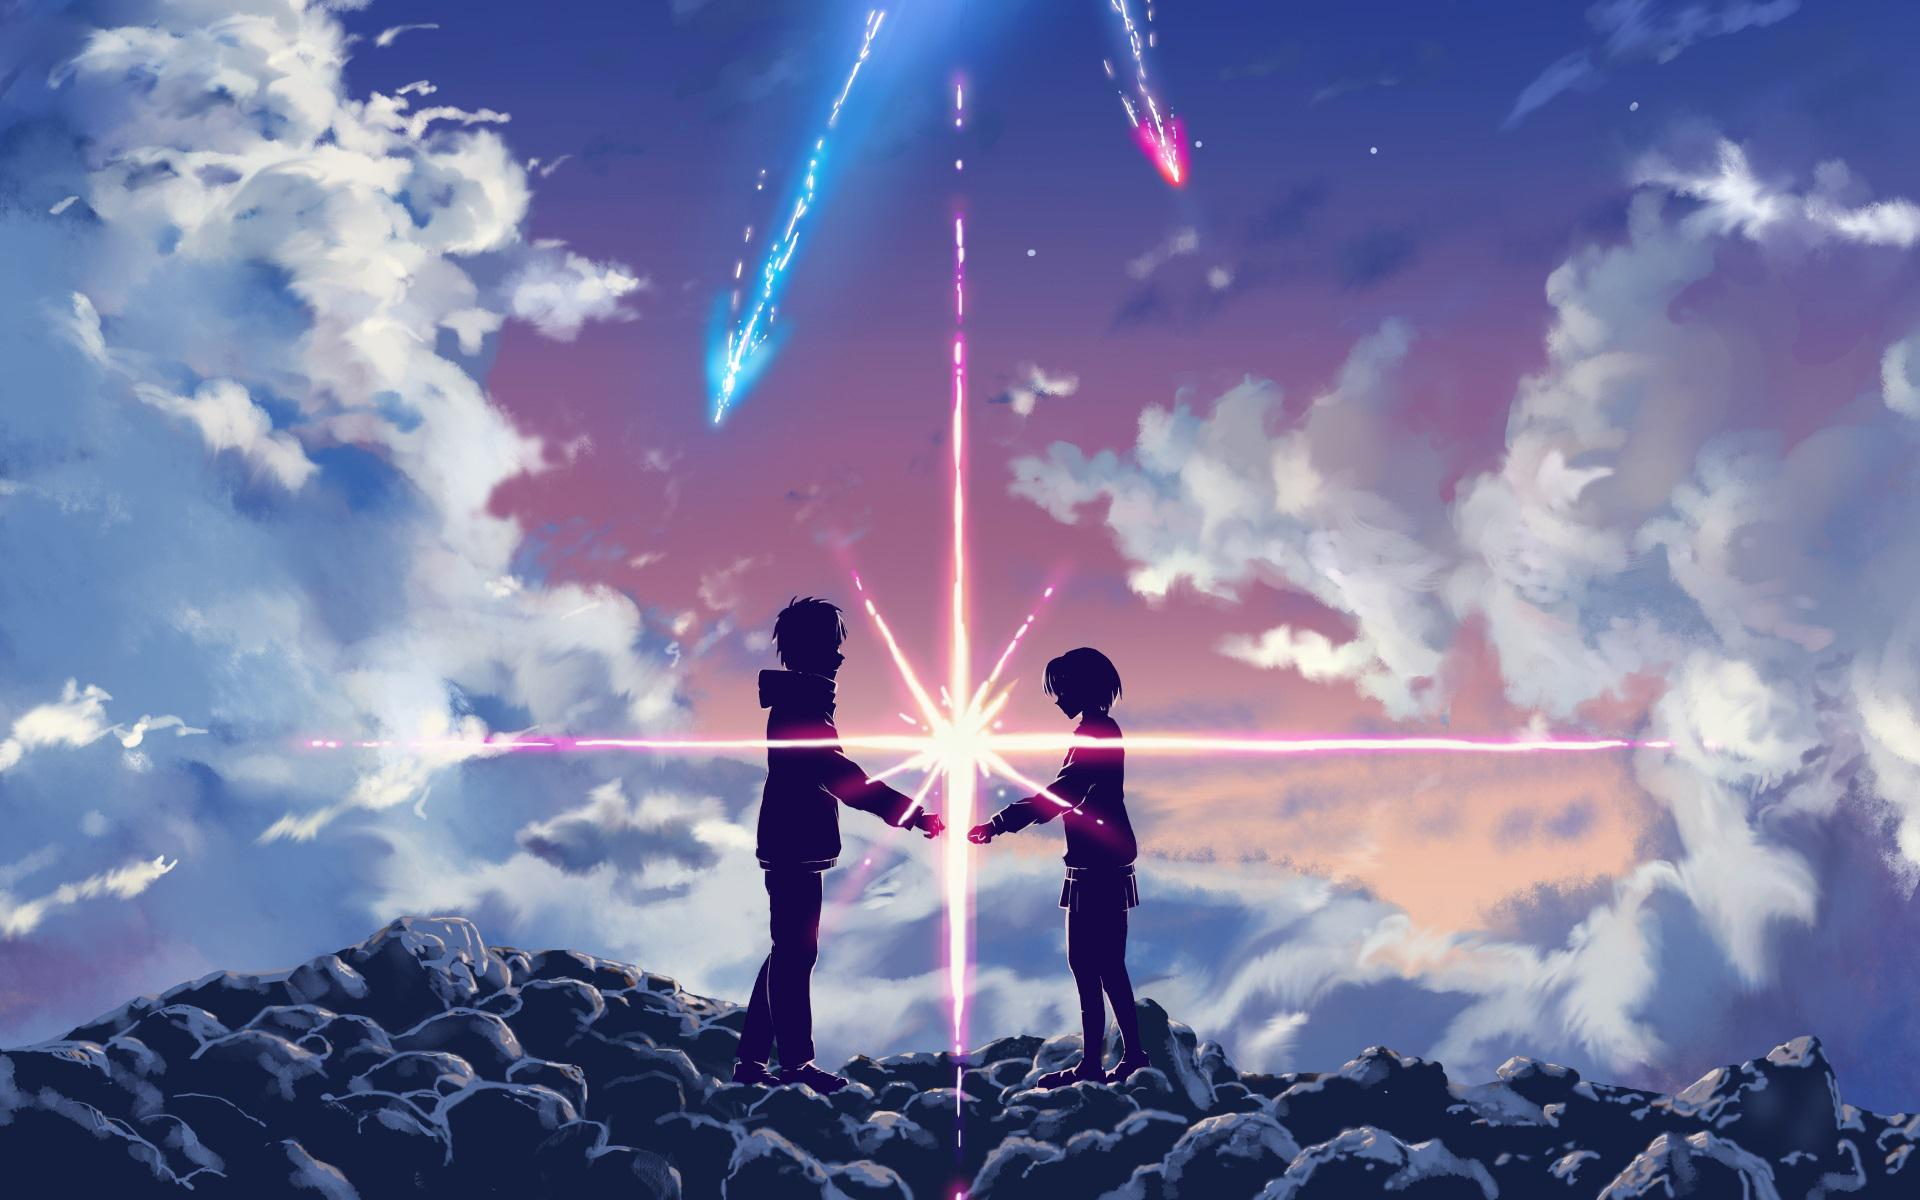 Film Cartoon - Your Name - Kimi no Na wa (love anime story) - Taki e Mitsuha - kataware doki - afternoon - tramonto - sunset